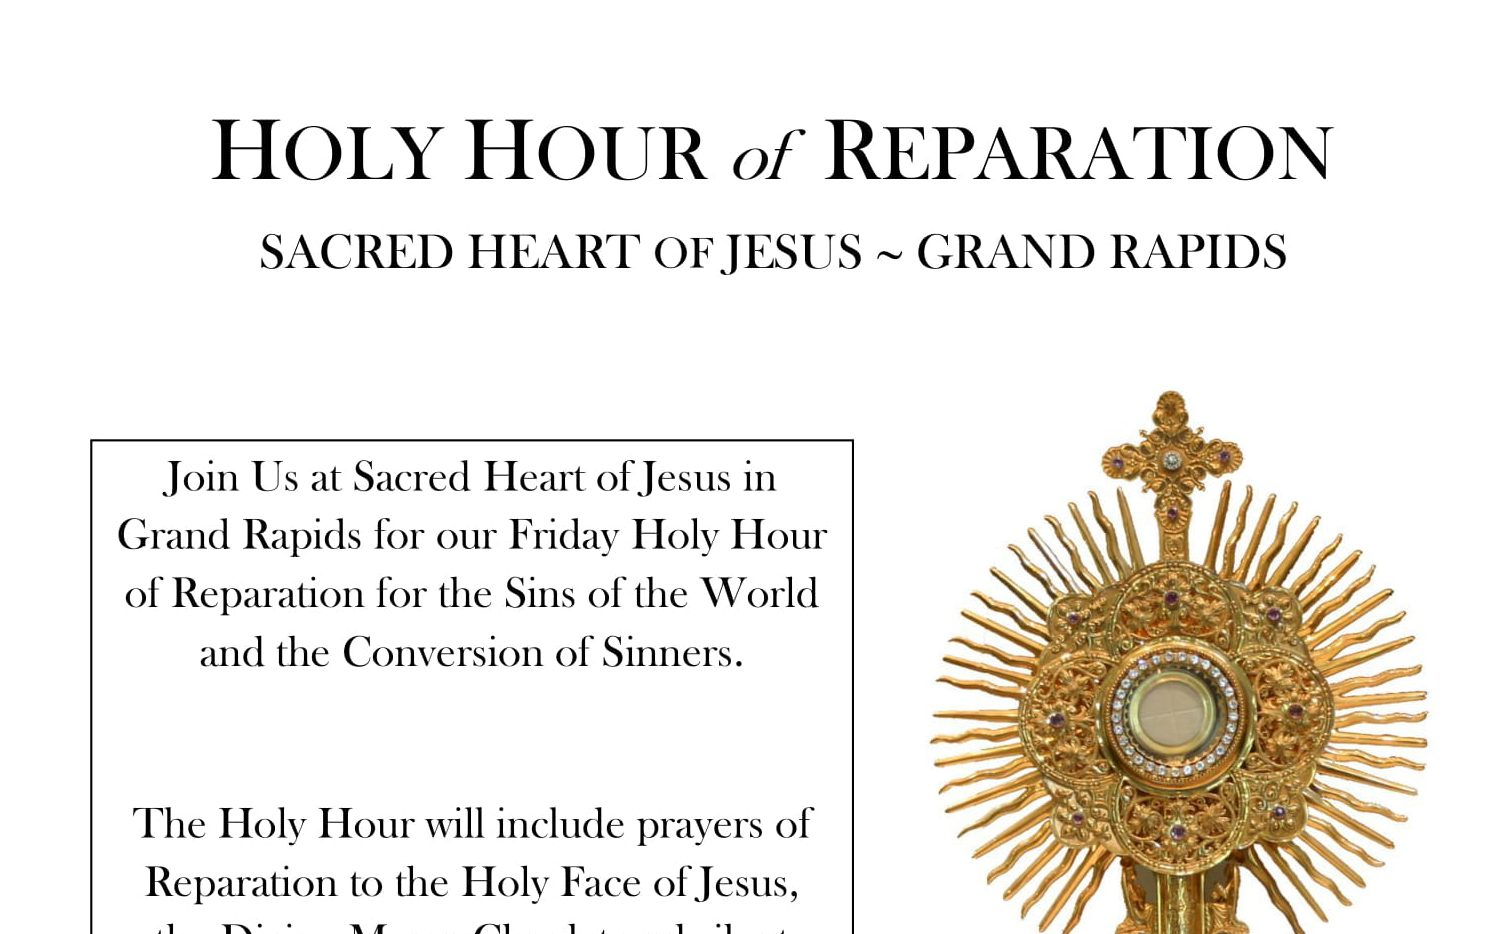 Friday Holy Hour of Reparation